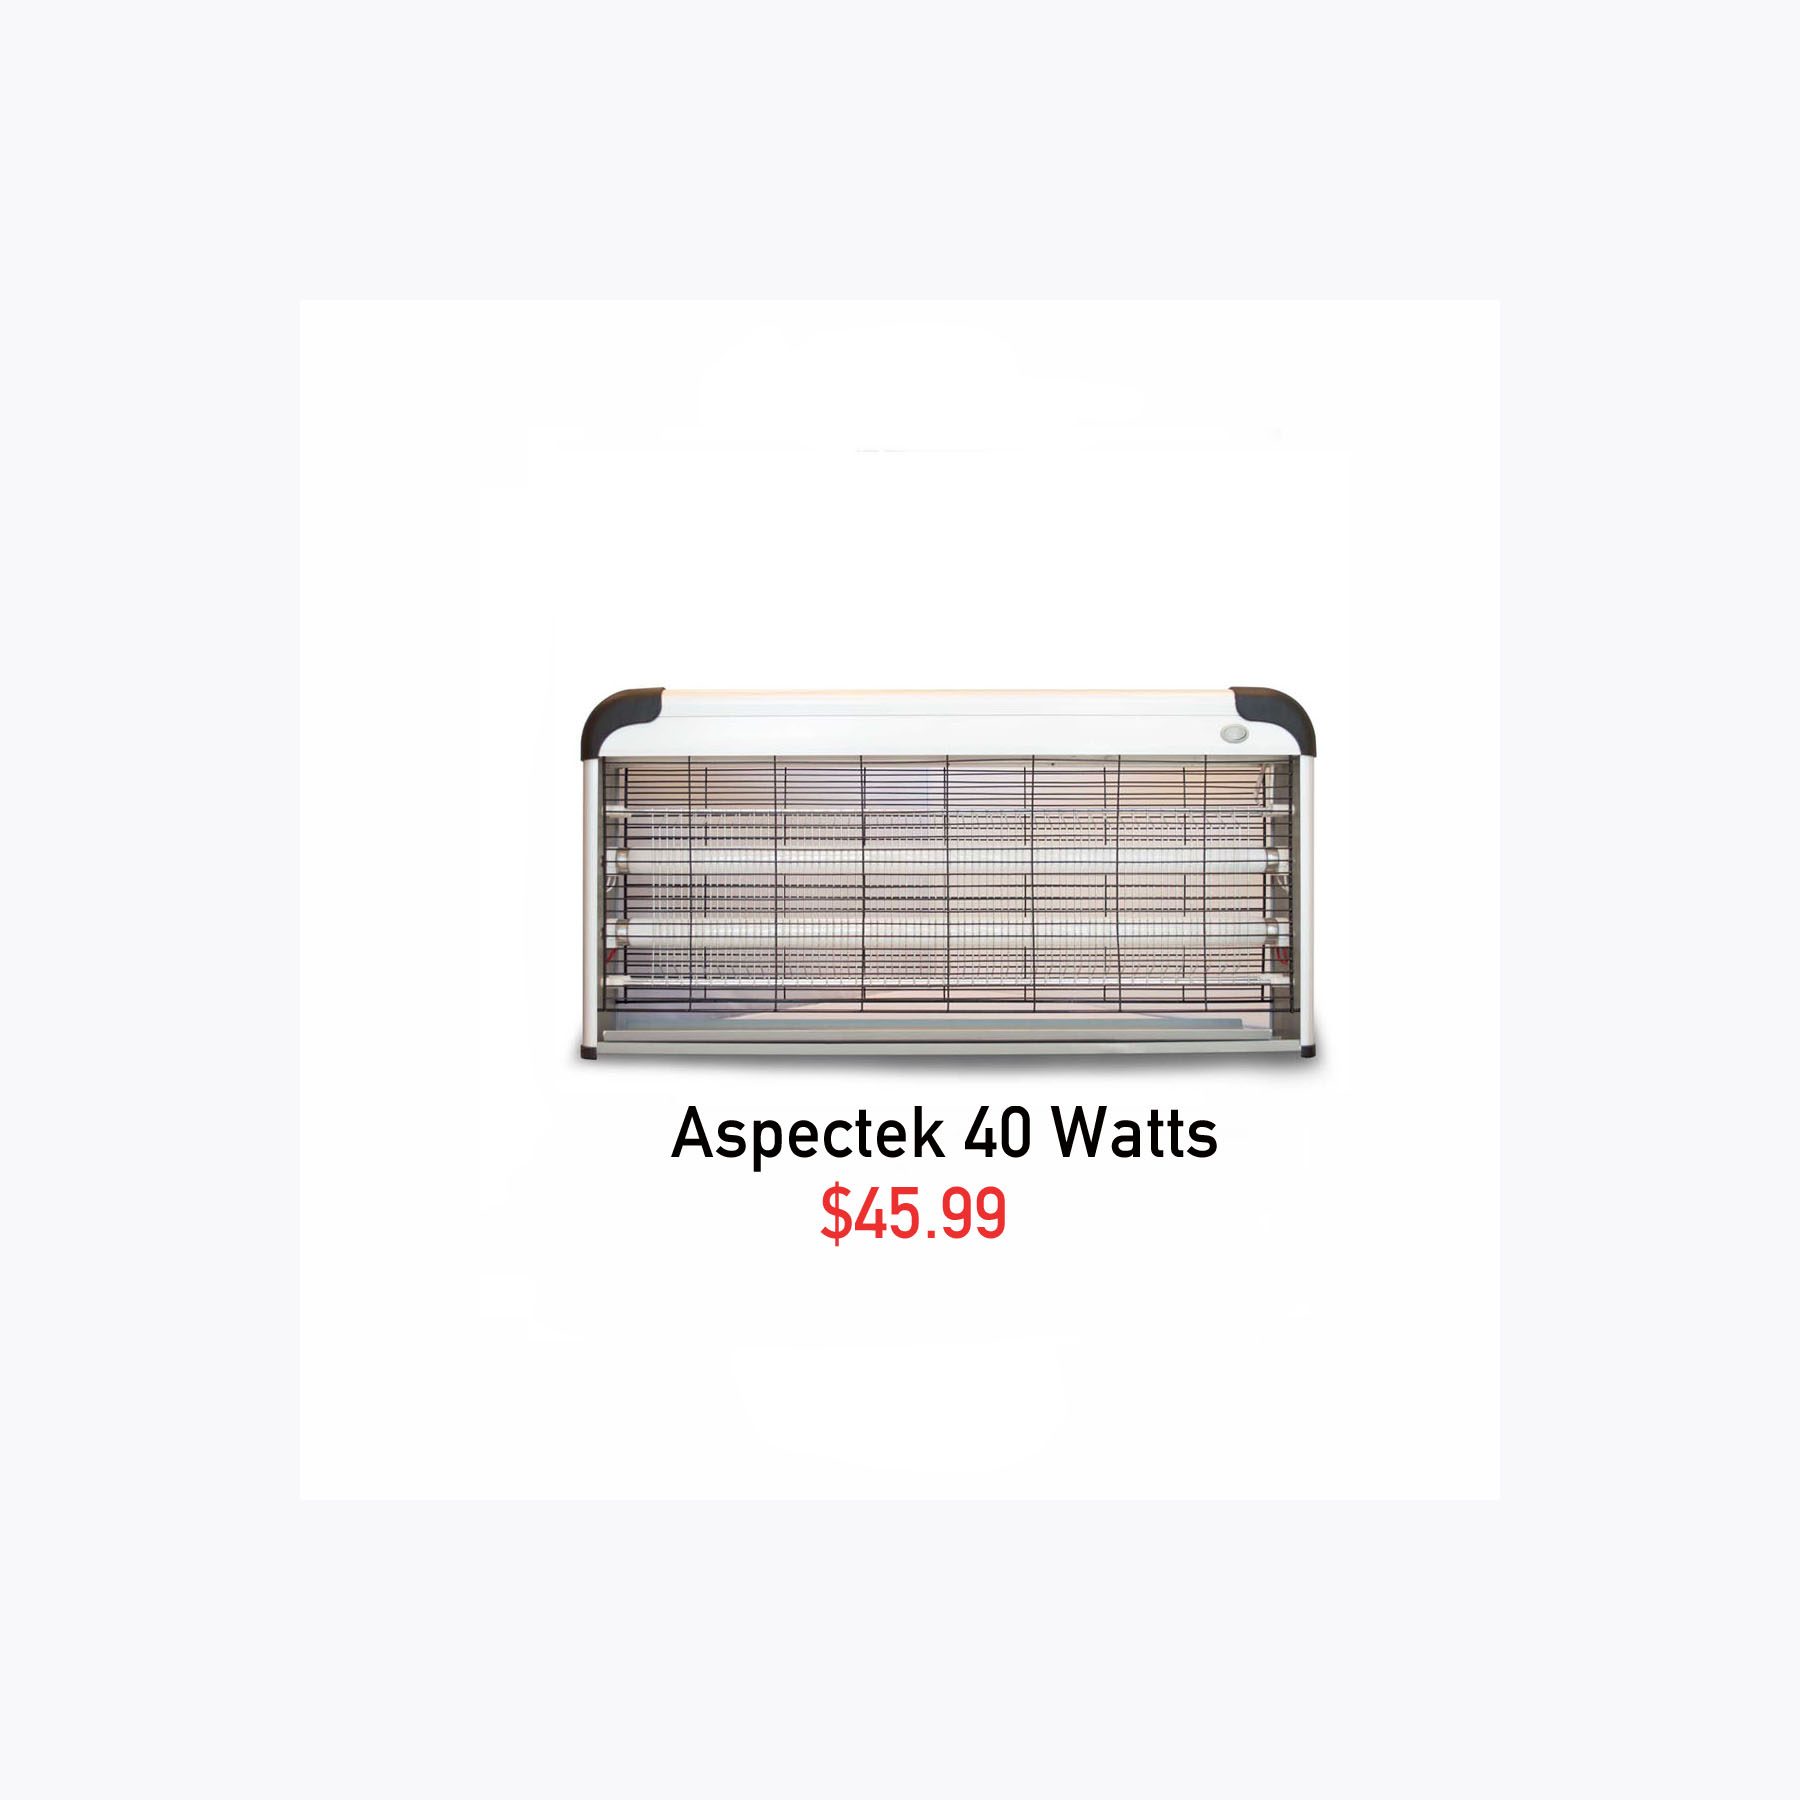 Aspectek Insect Killer